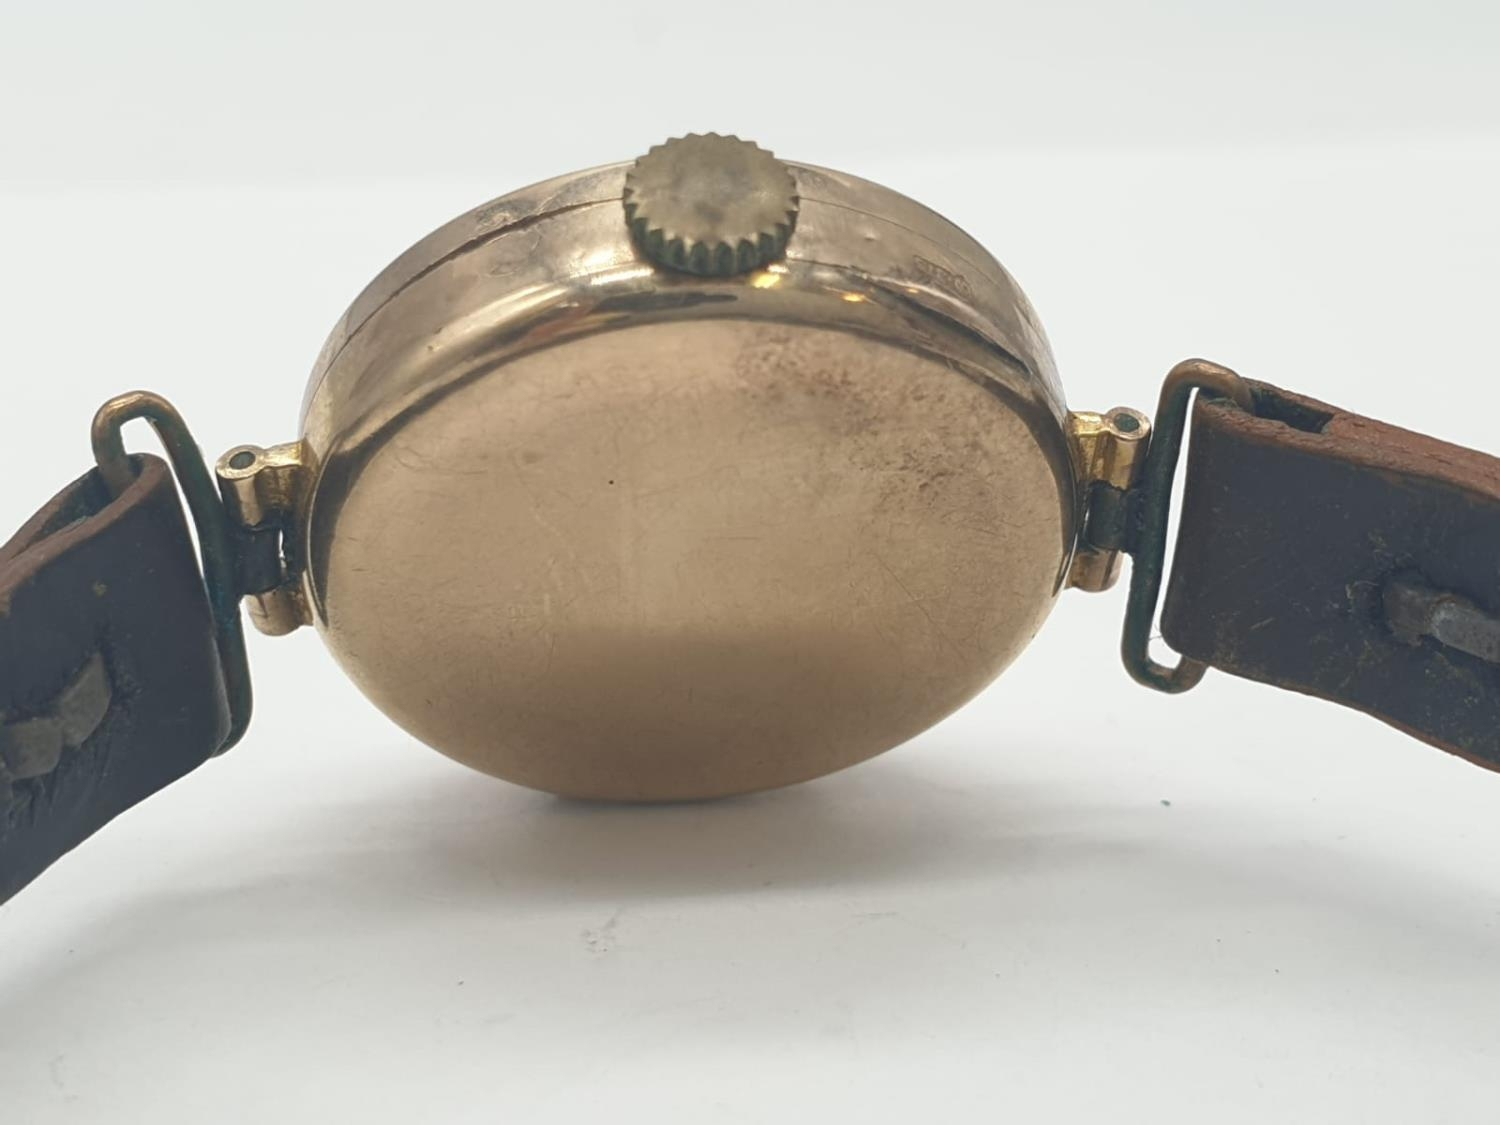 Vintage 9ct gold ladies wrist watch with leather strap - Image 6 of 9